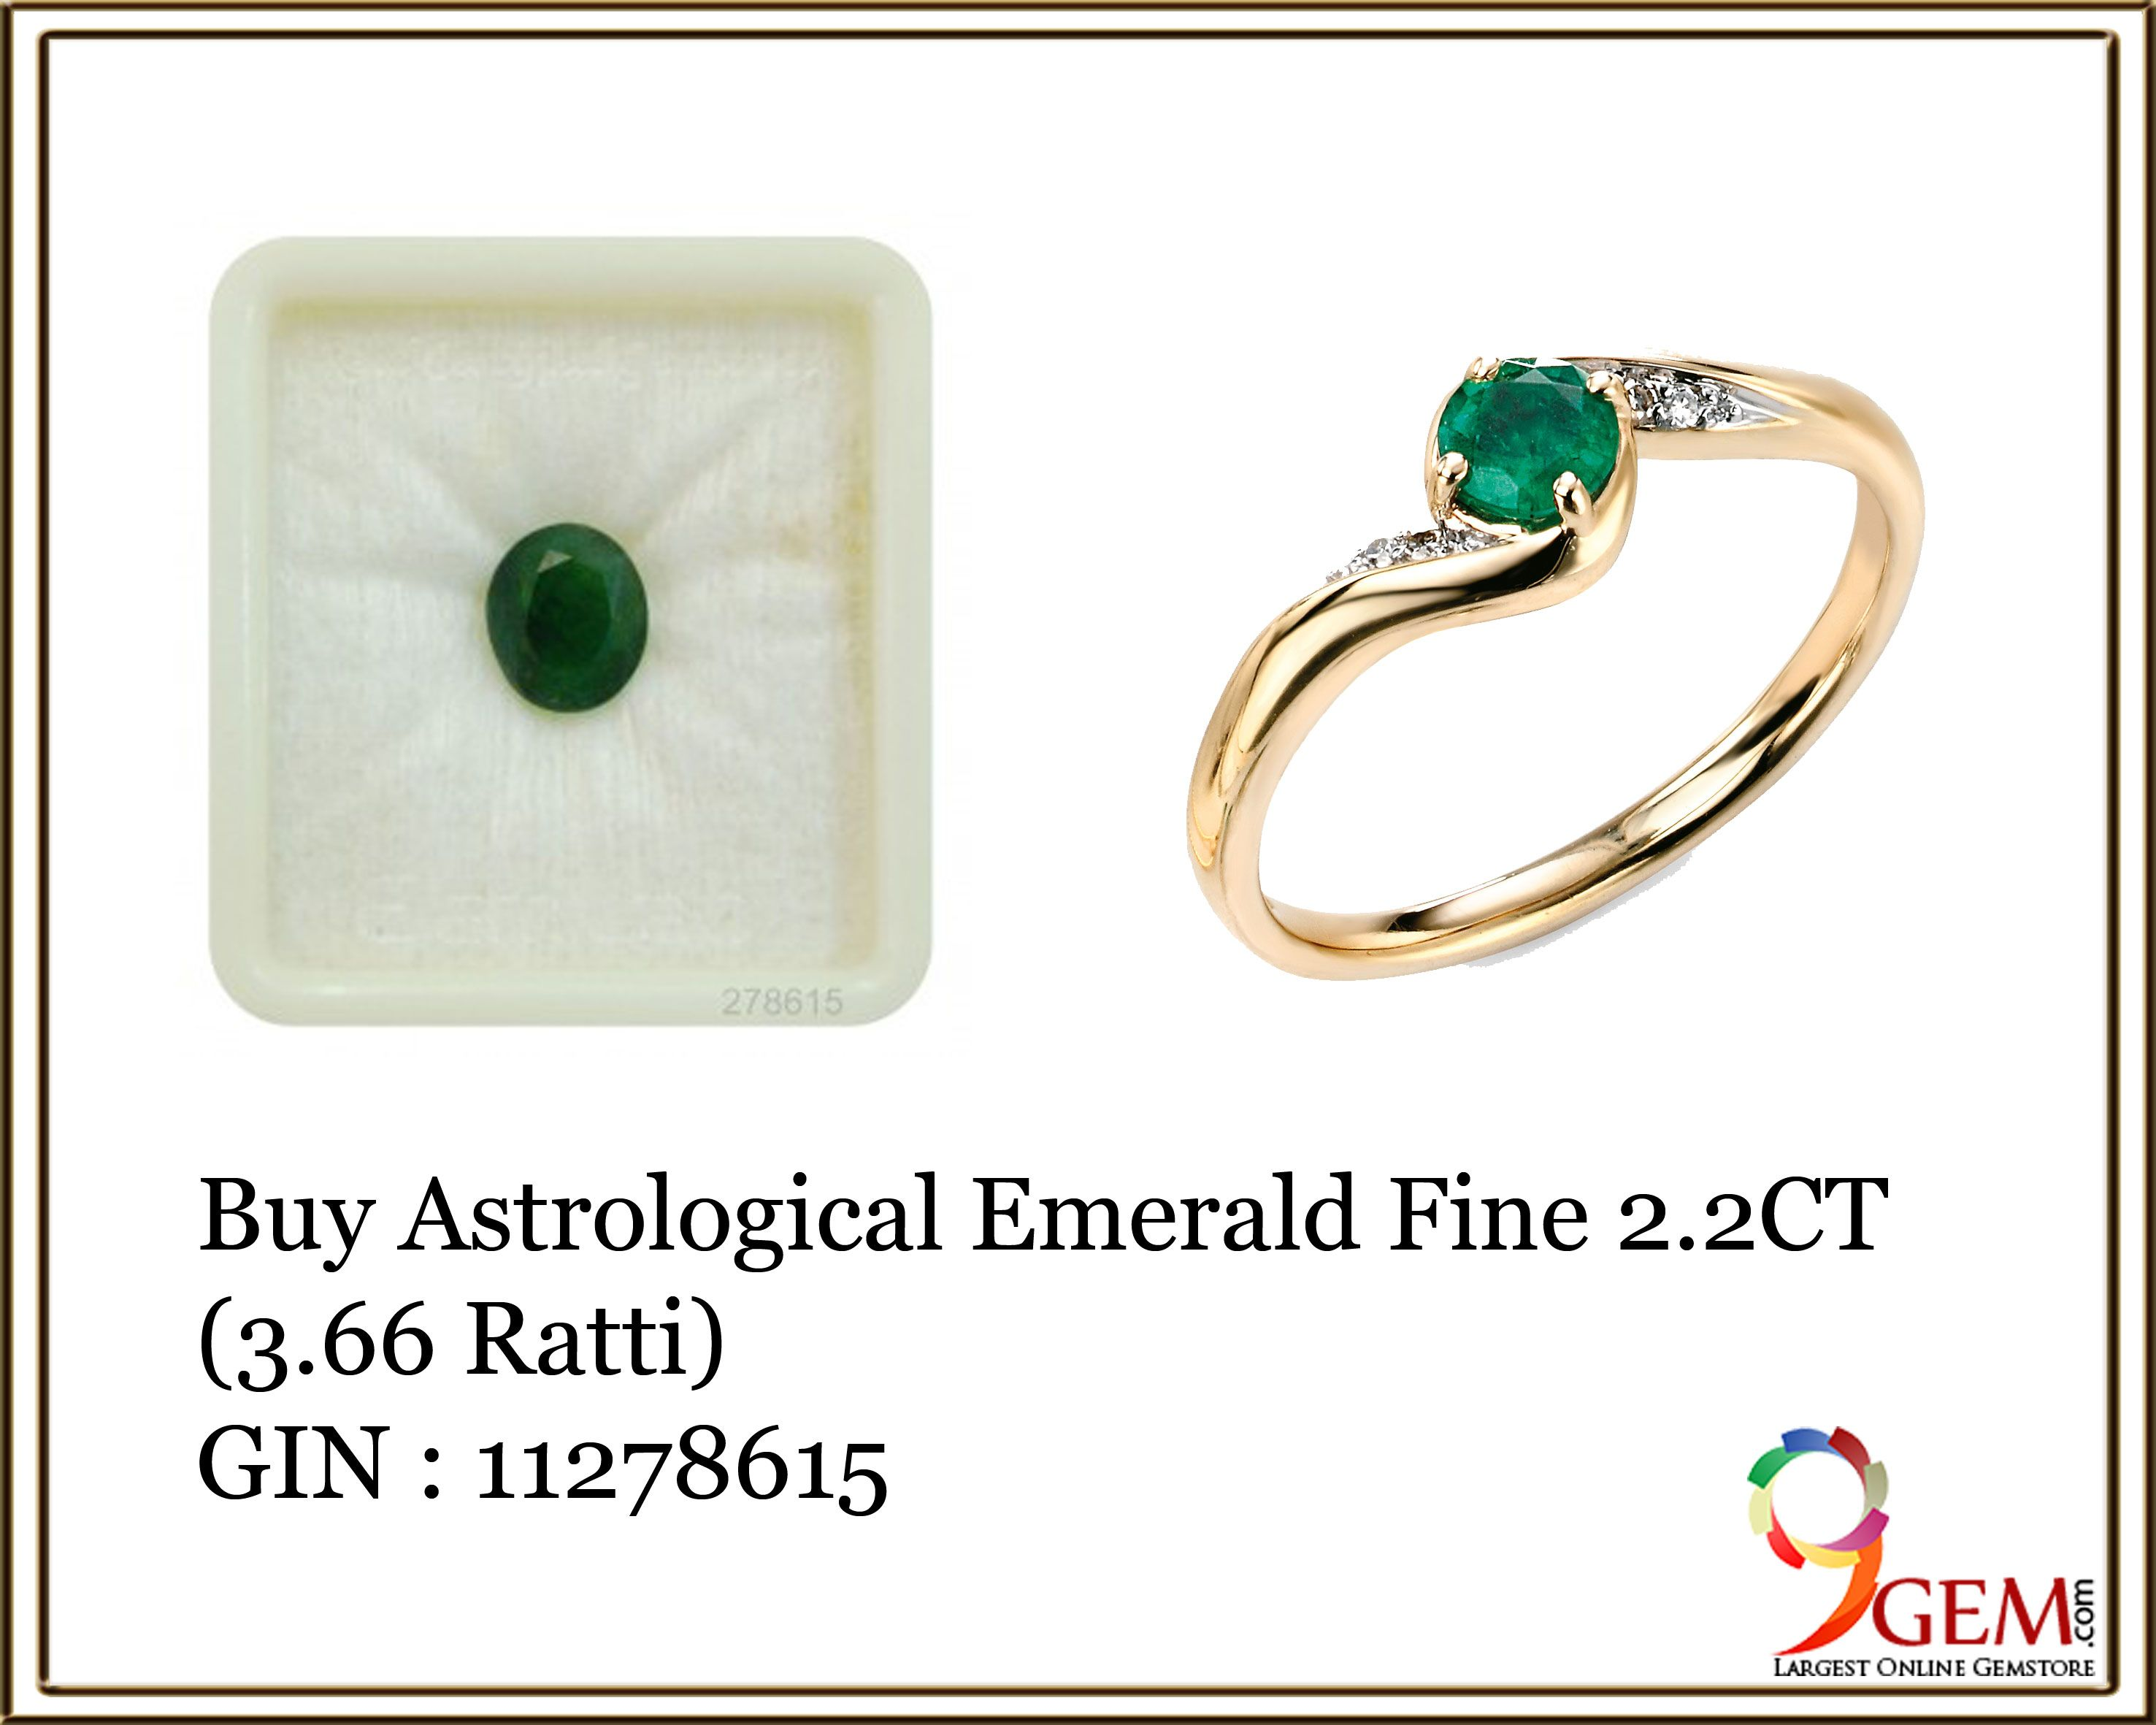 urdu history benefits emerald zamurd color price picture in gemstones and